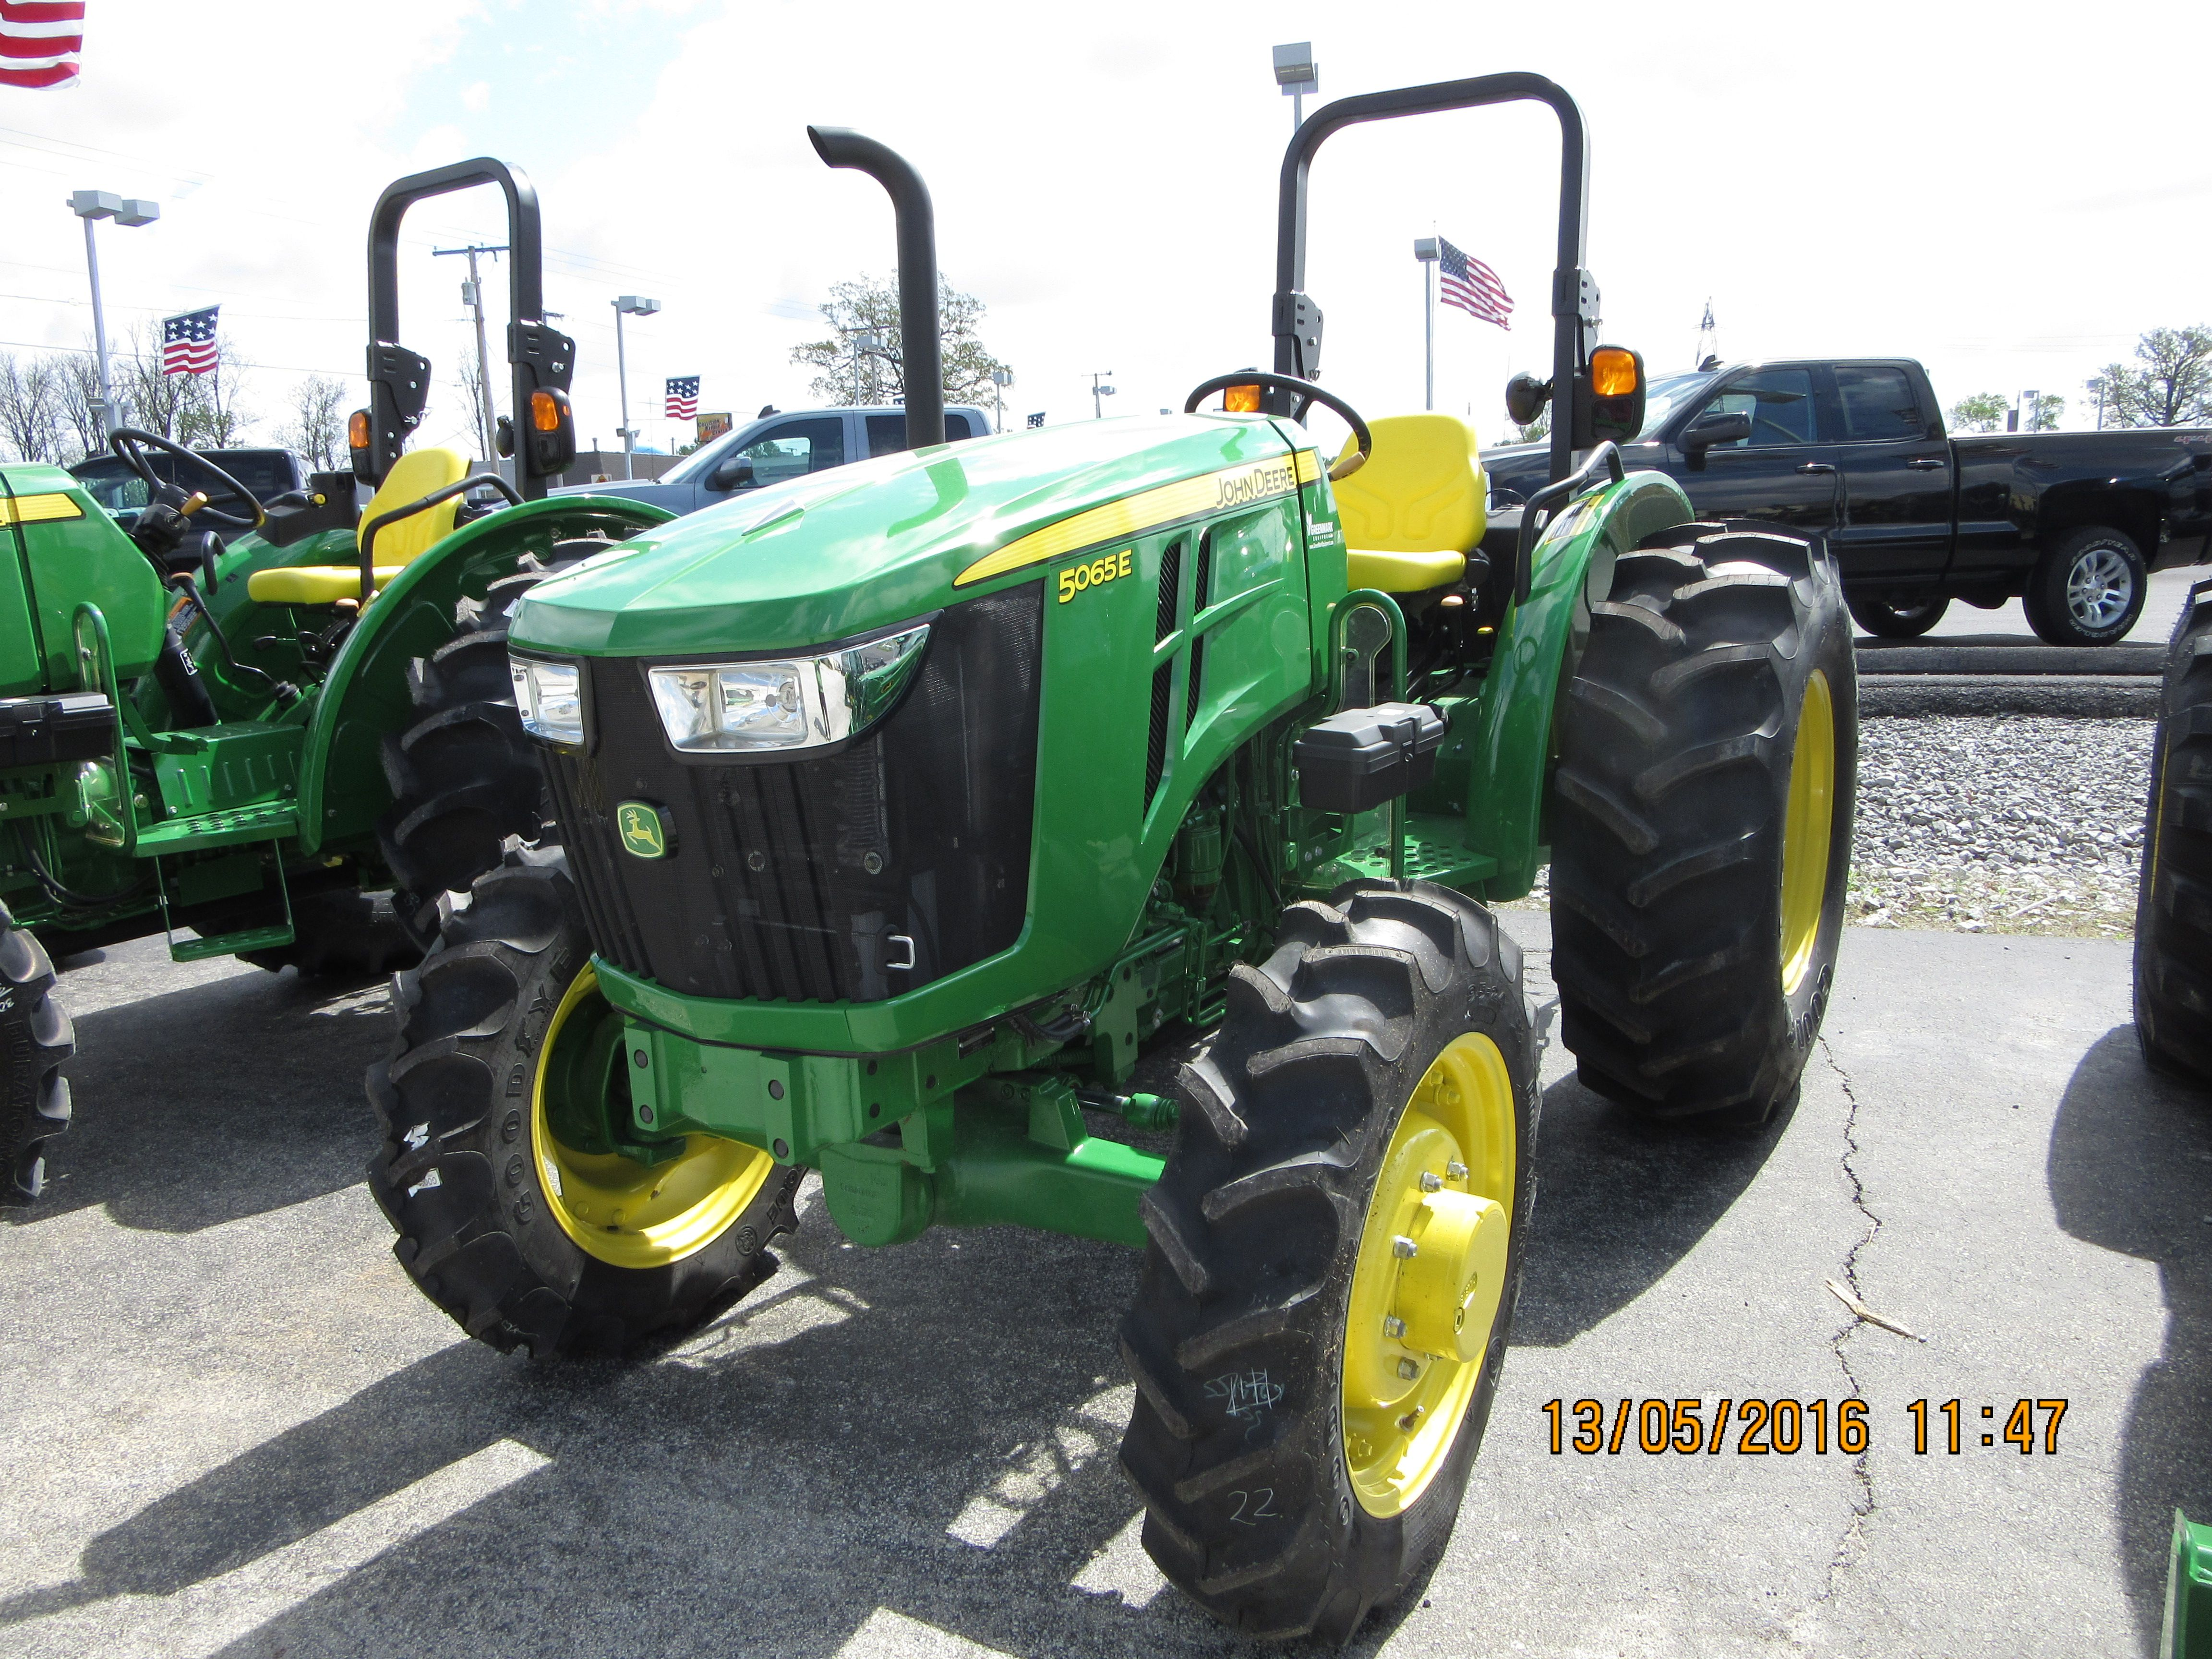 John Deere 5065E John Deere 5065e, John Deere Equipment, Tractors, Tractor  Pulling